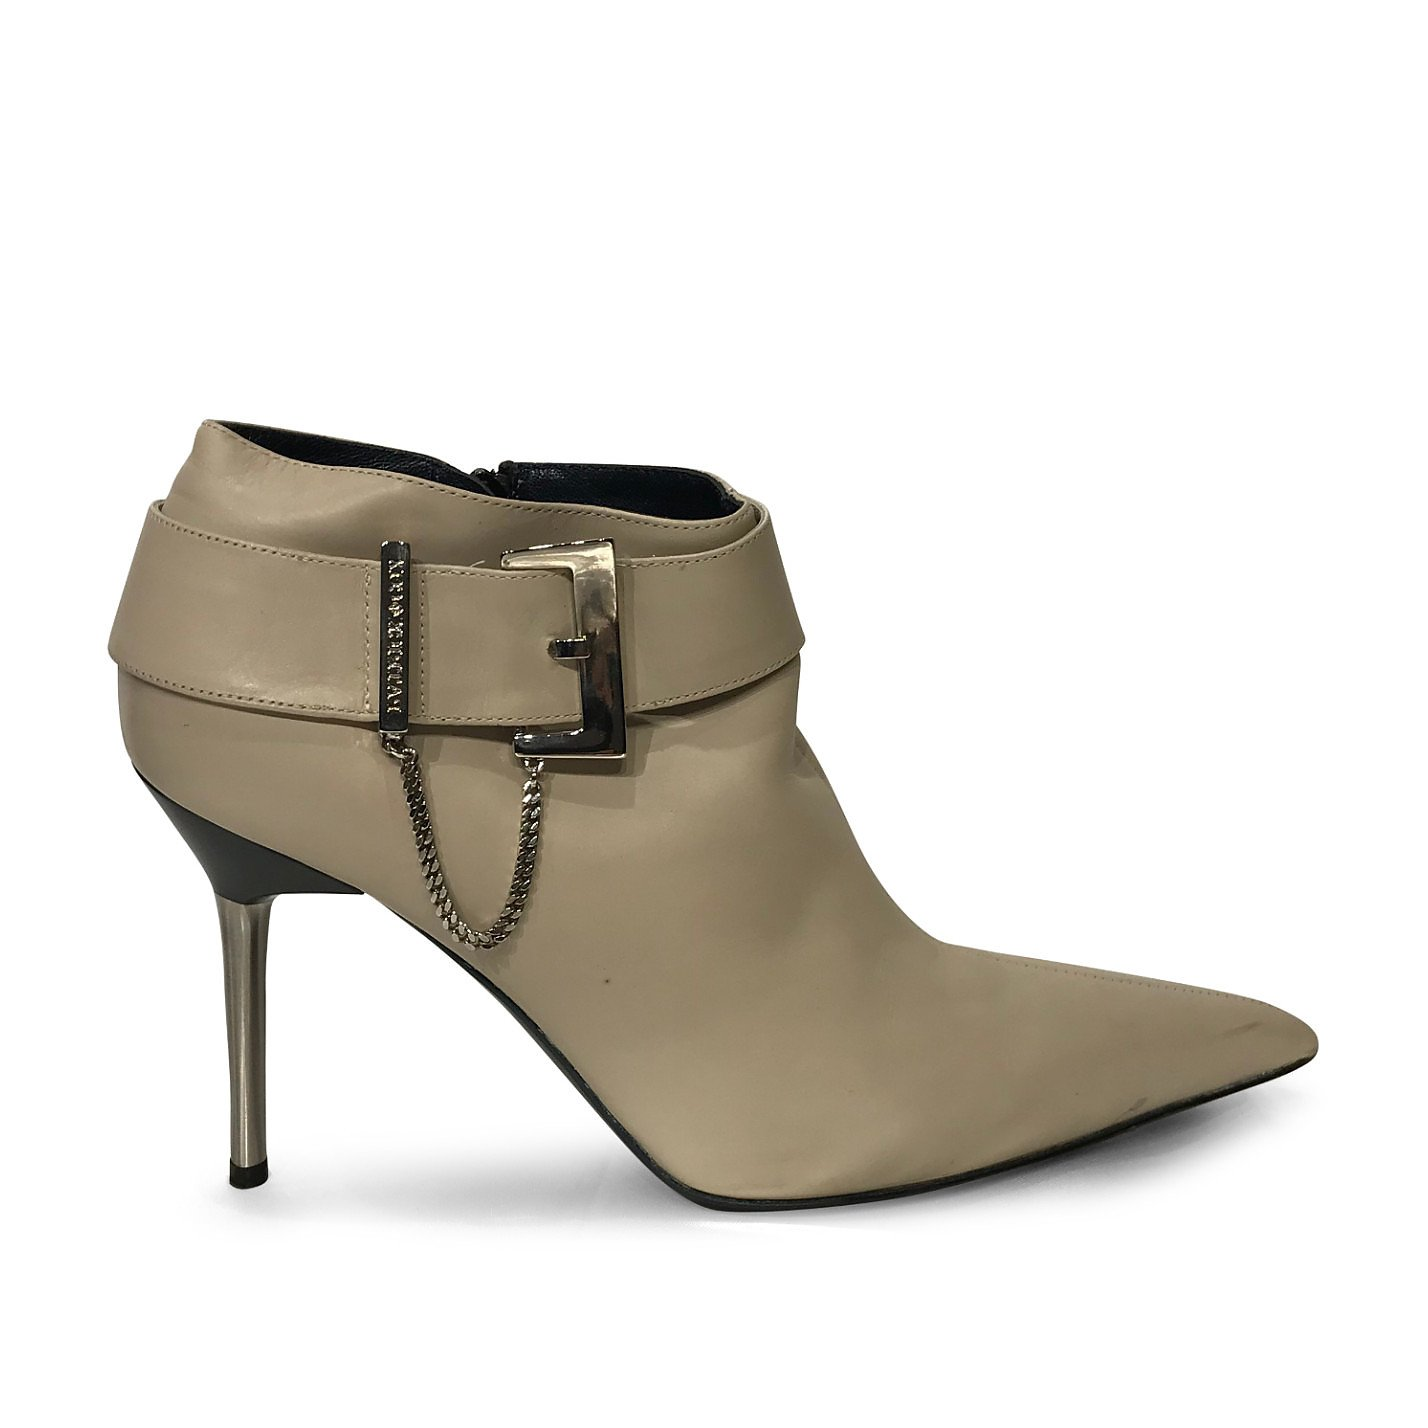 Patrick Cox Buckle-Detail Leather Booties